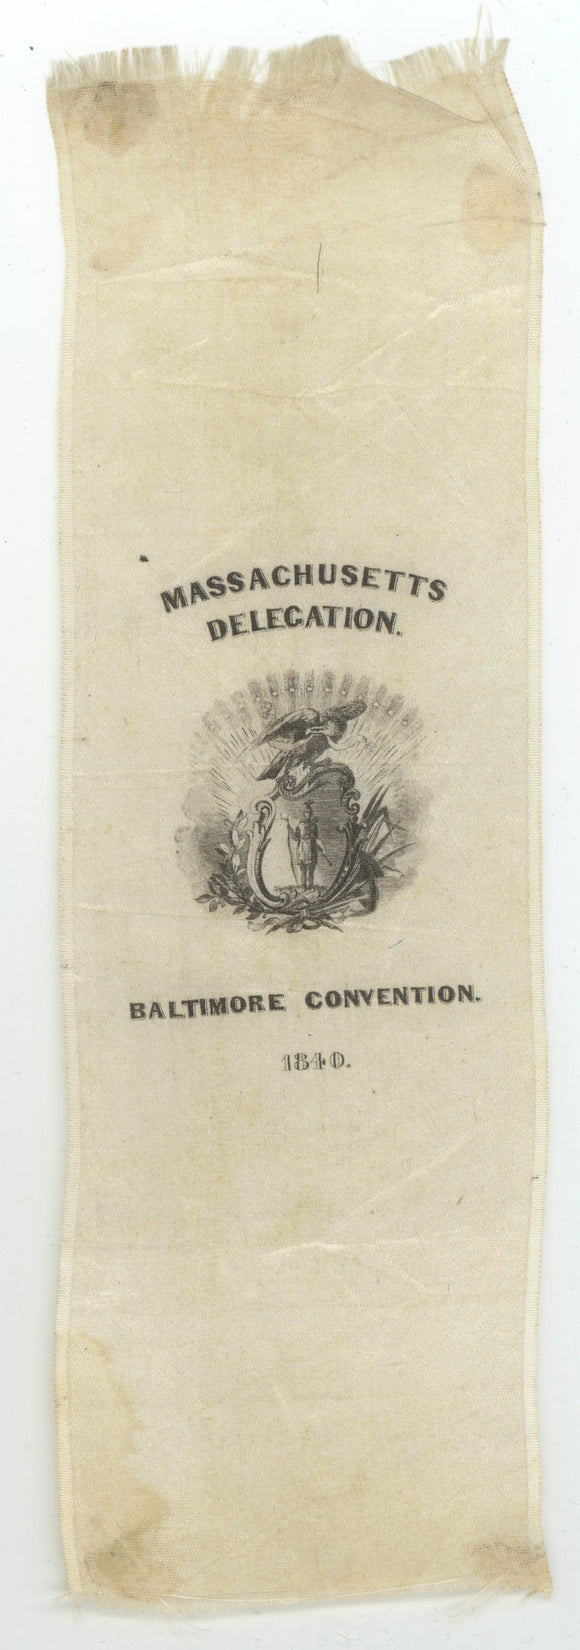 MASSACHUSETTS DELEGATION.  BALTIMORE CONVENTION.  1840.